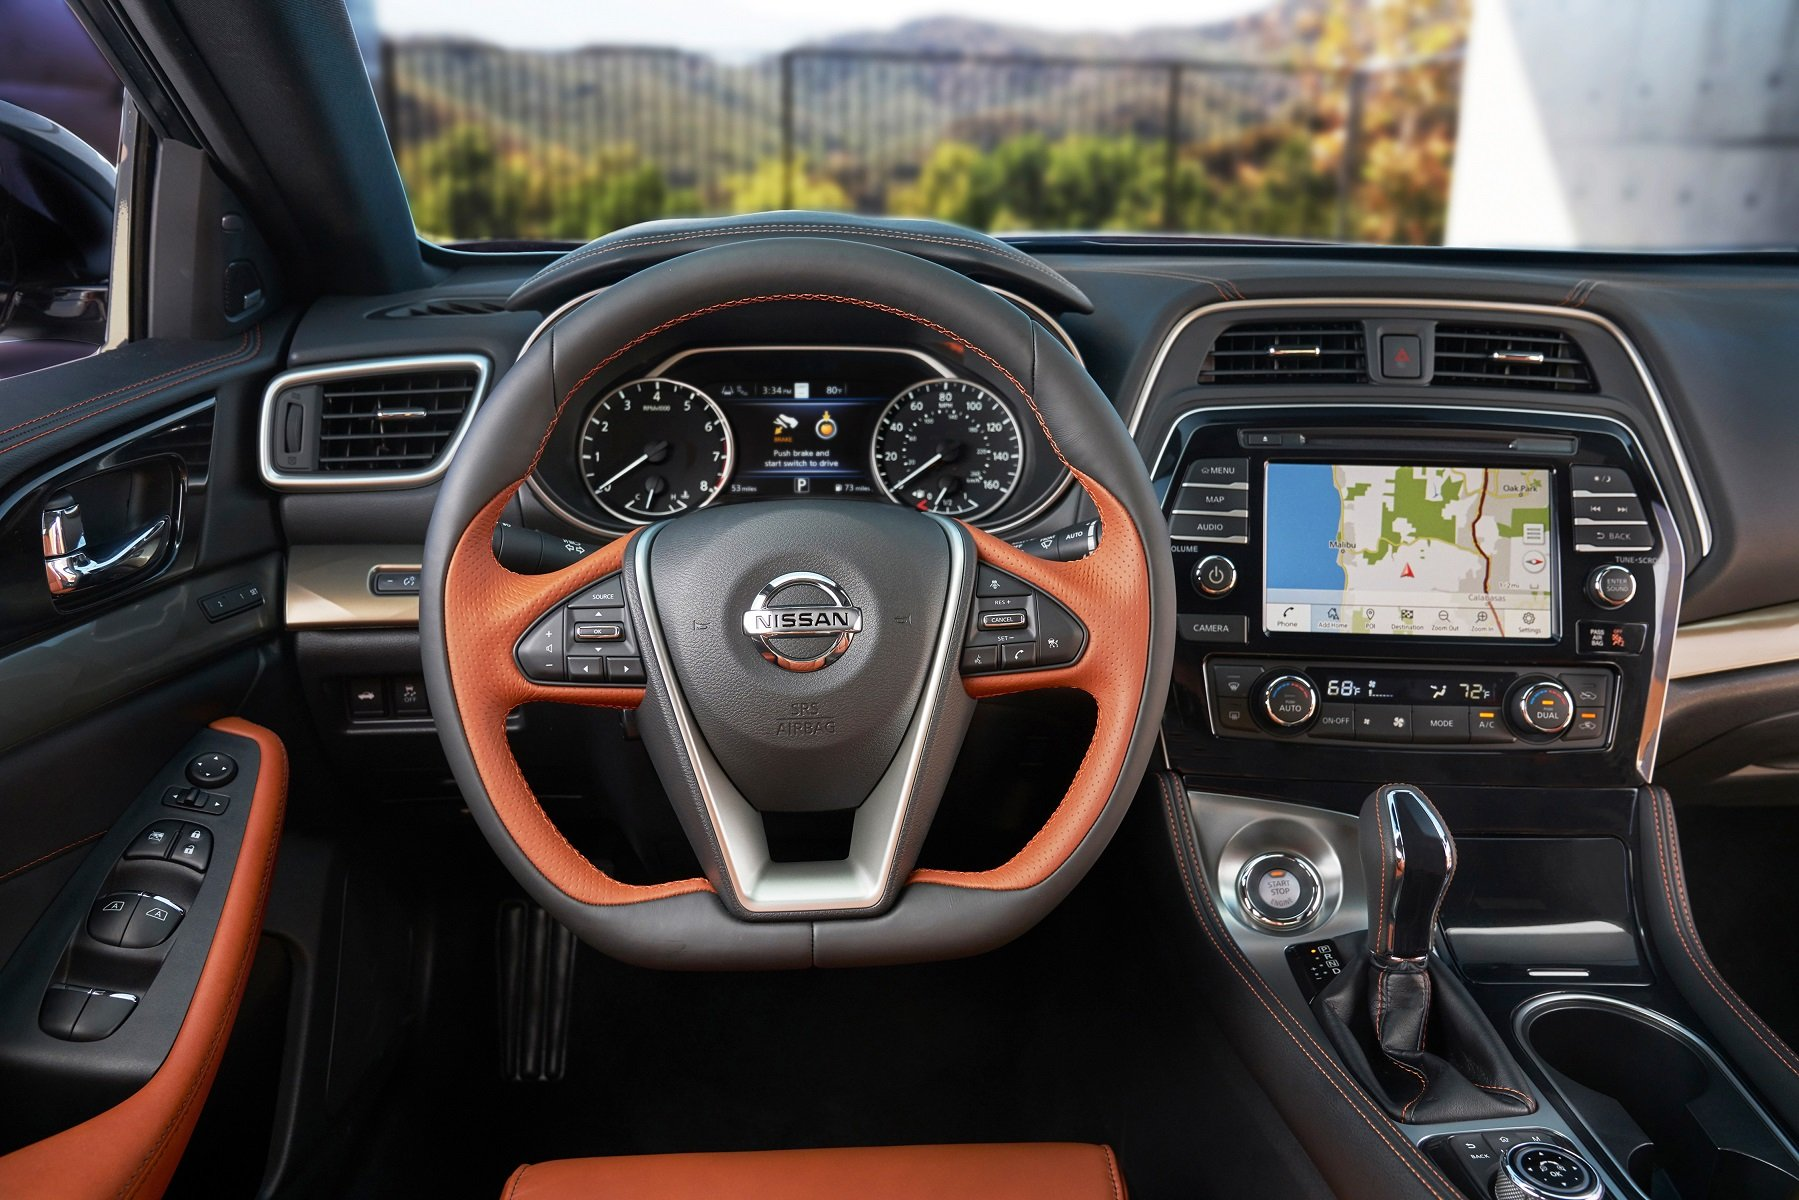 """The 2020 Nissan Maxima wins """"Middle East Car of the Year"""" Award 2020 within the large Sedan segment category as a premium sports sedan"""